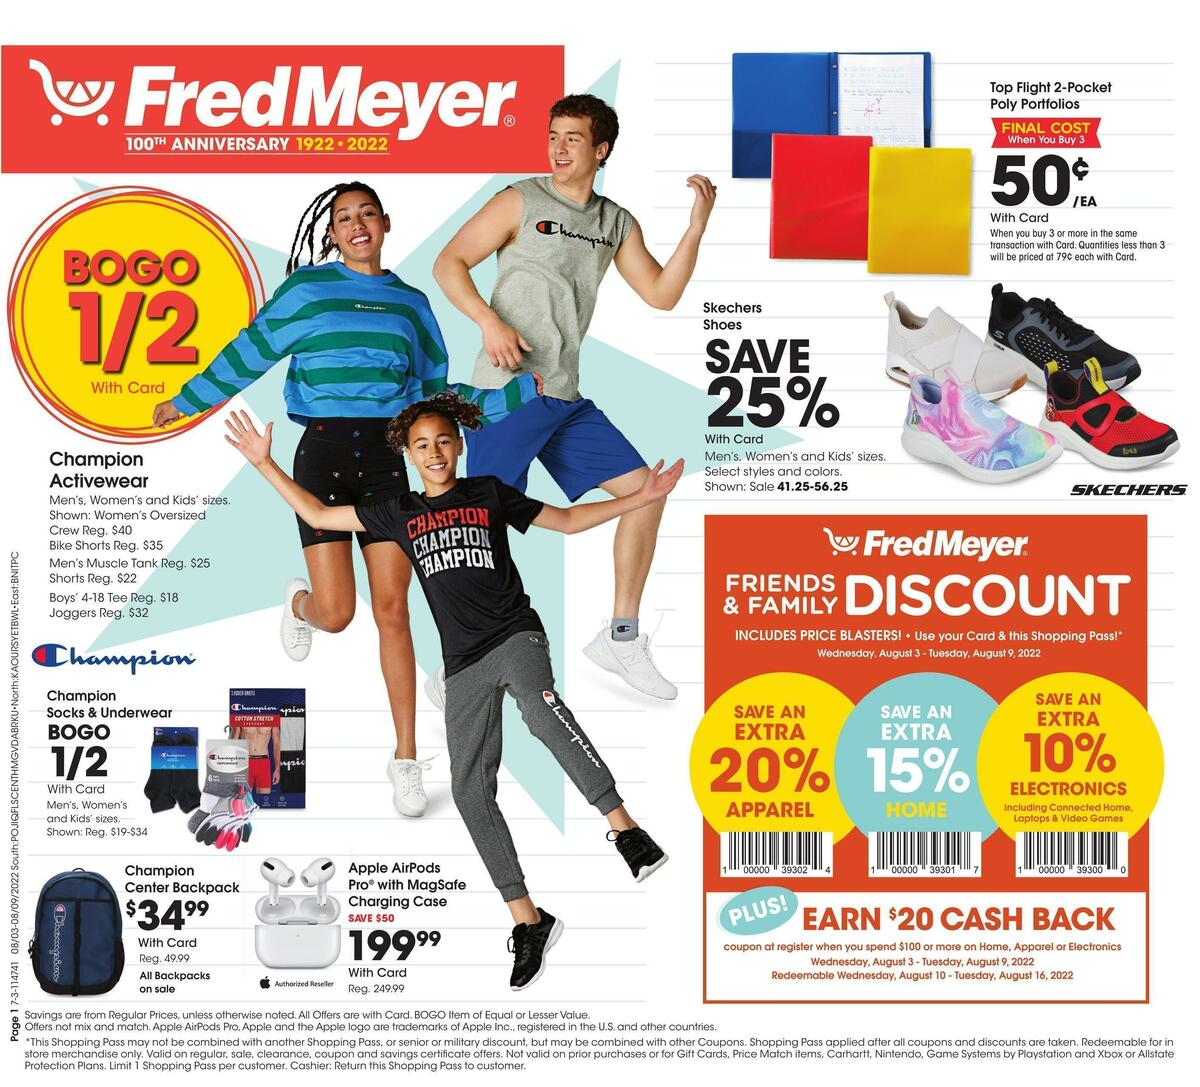 Fred Meyer - Port Orchard, WA - Hours & Weekly Ad